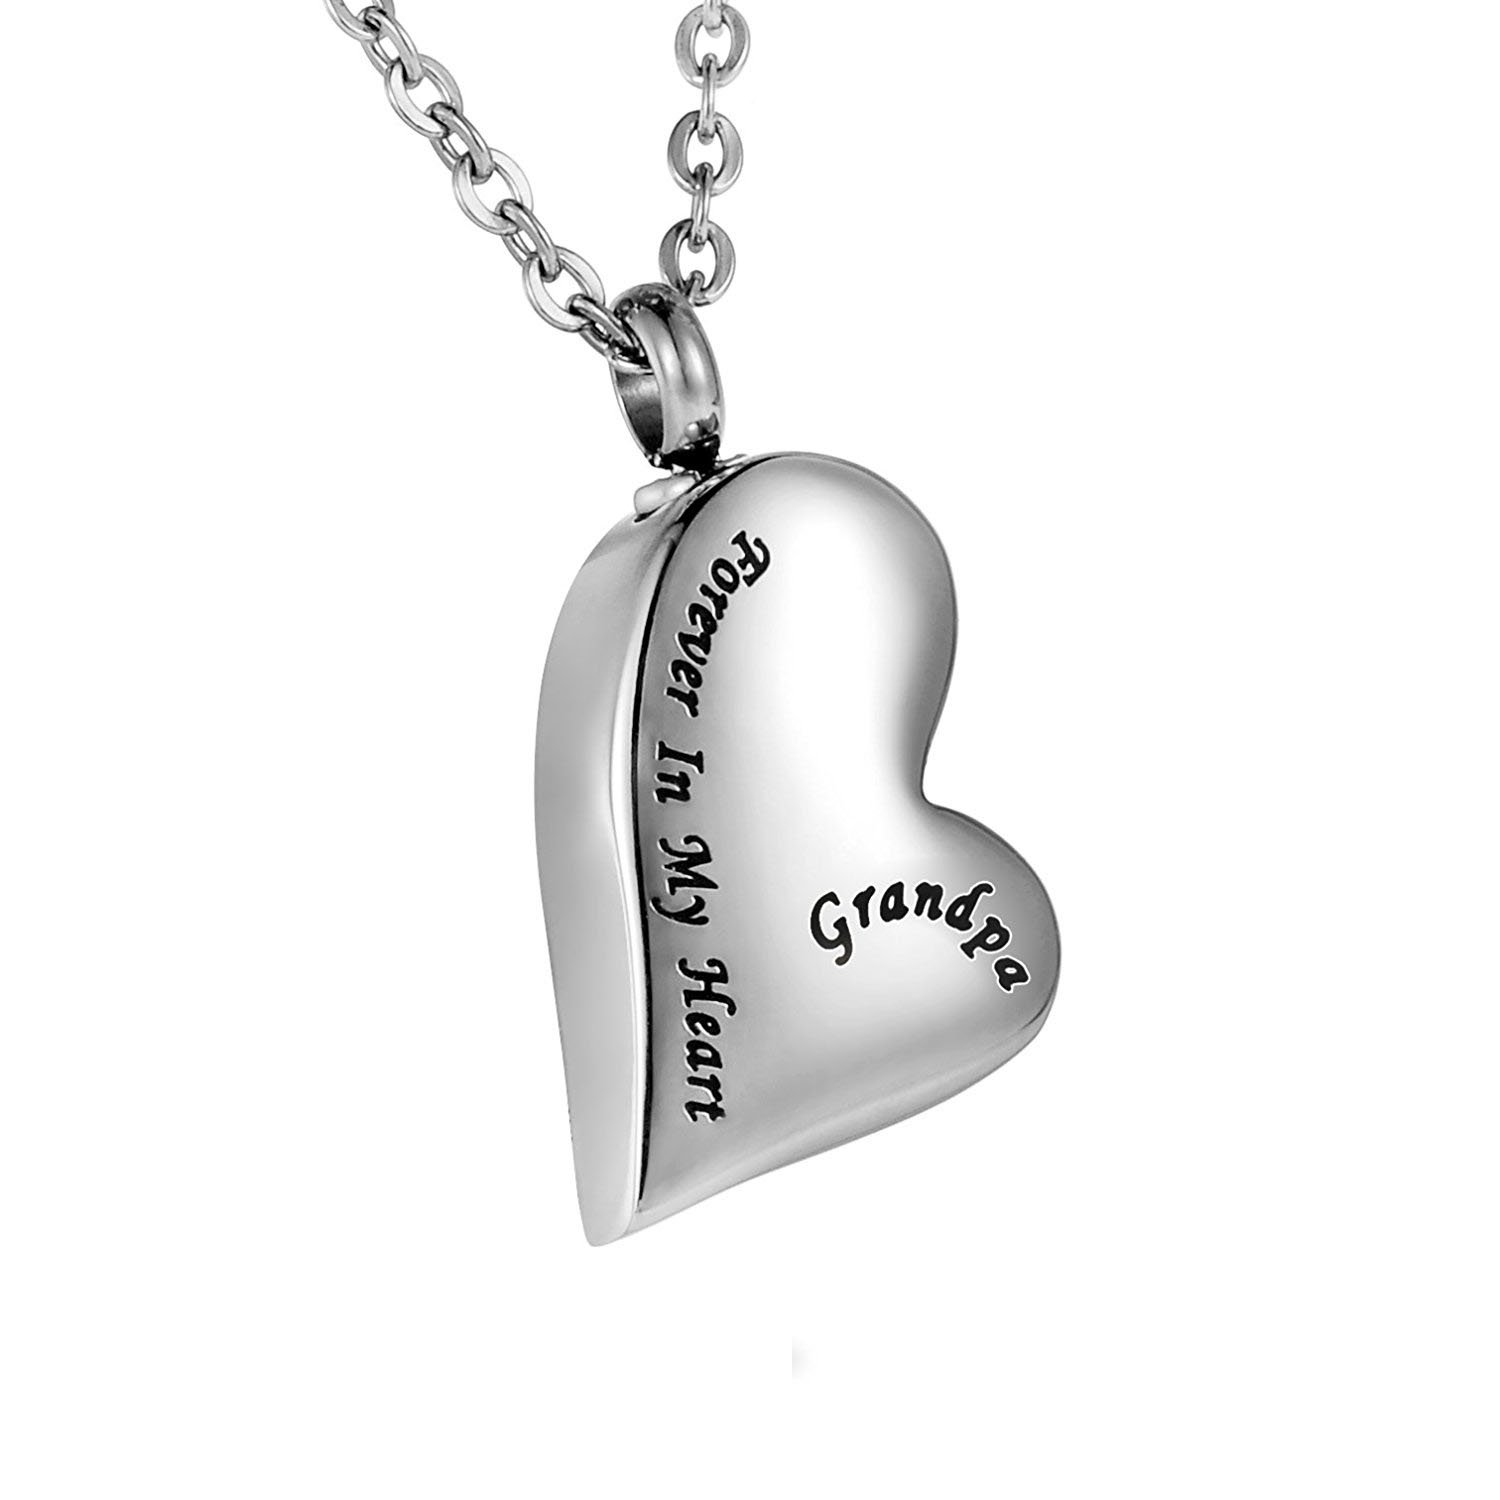 Cremation Urn Ashes Necklace Dad Forever In My Heart Stainless Steel Keepsake Waterproof Memorial Pendant Norya NoryaNYKC002V3